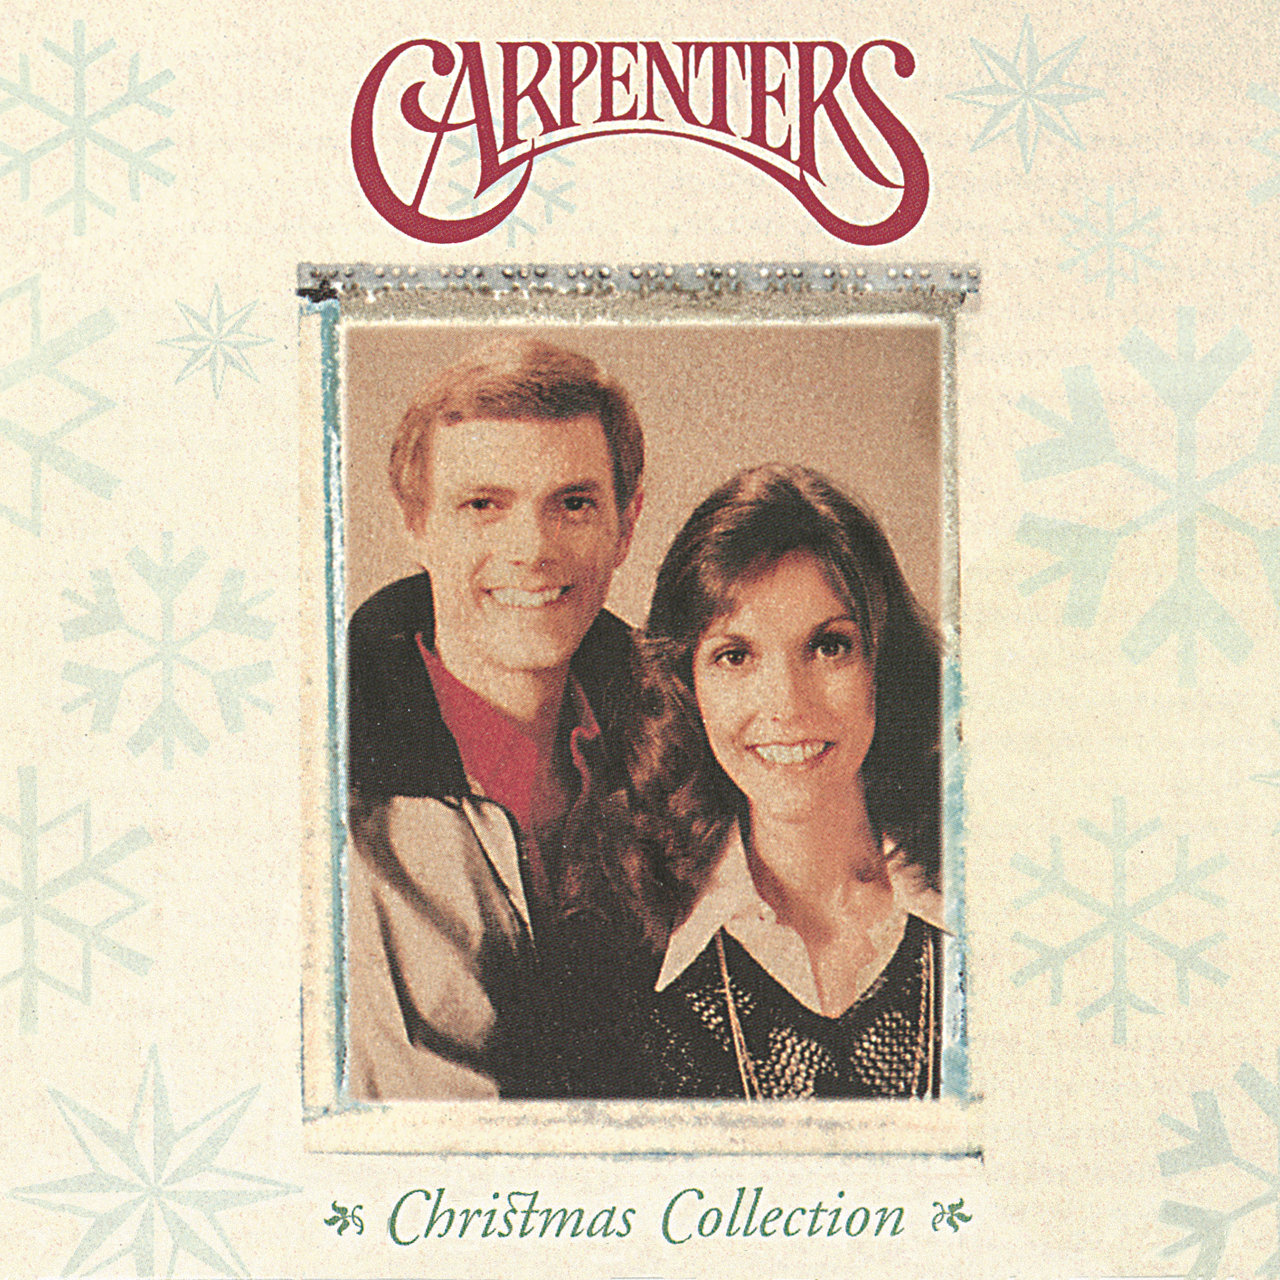 Insights and Sounds: A Little Carpenters for Christmas: Top Ten Songs